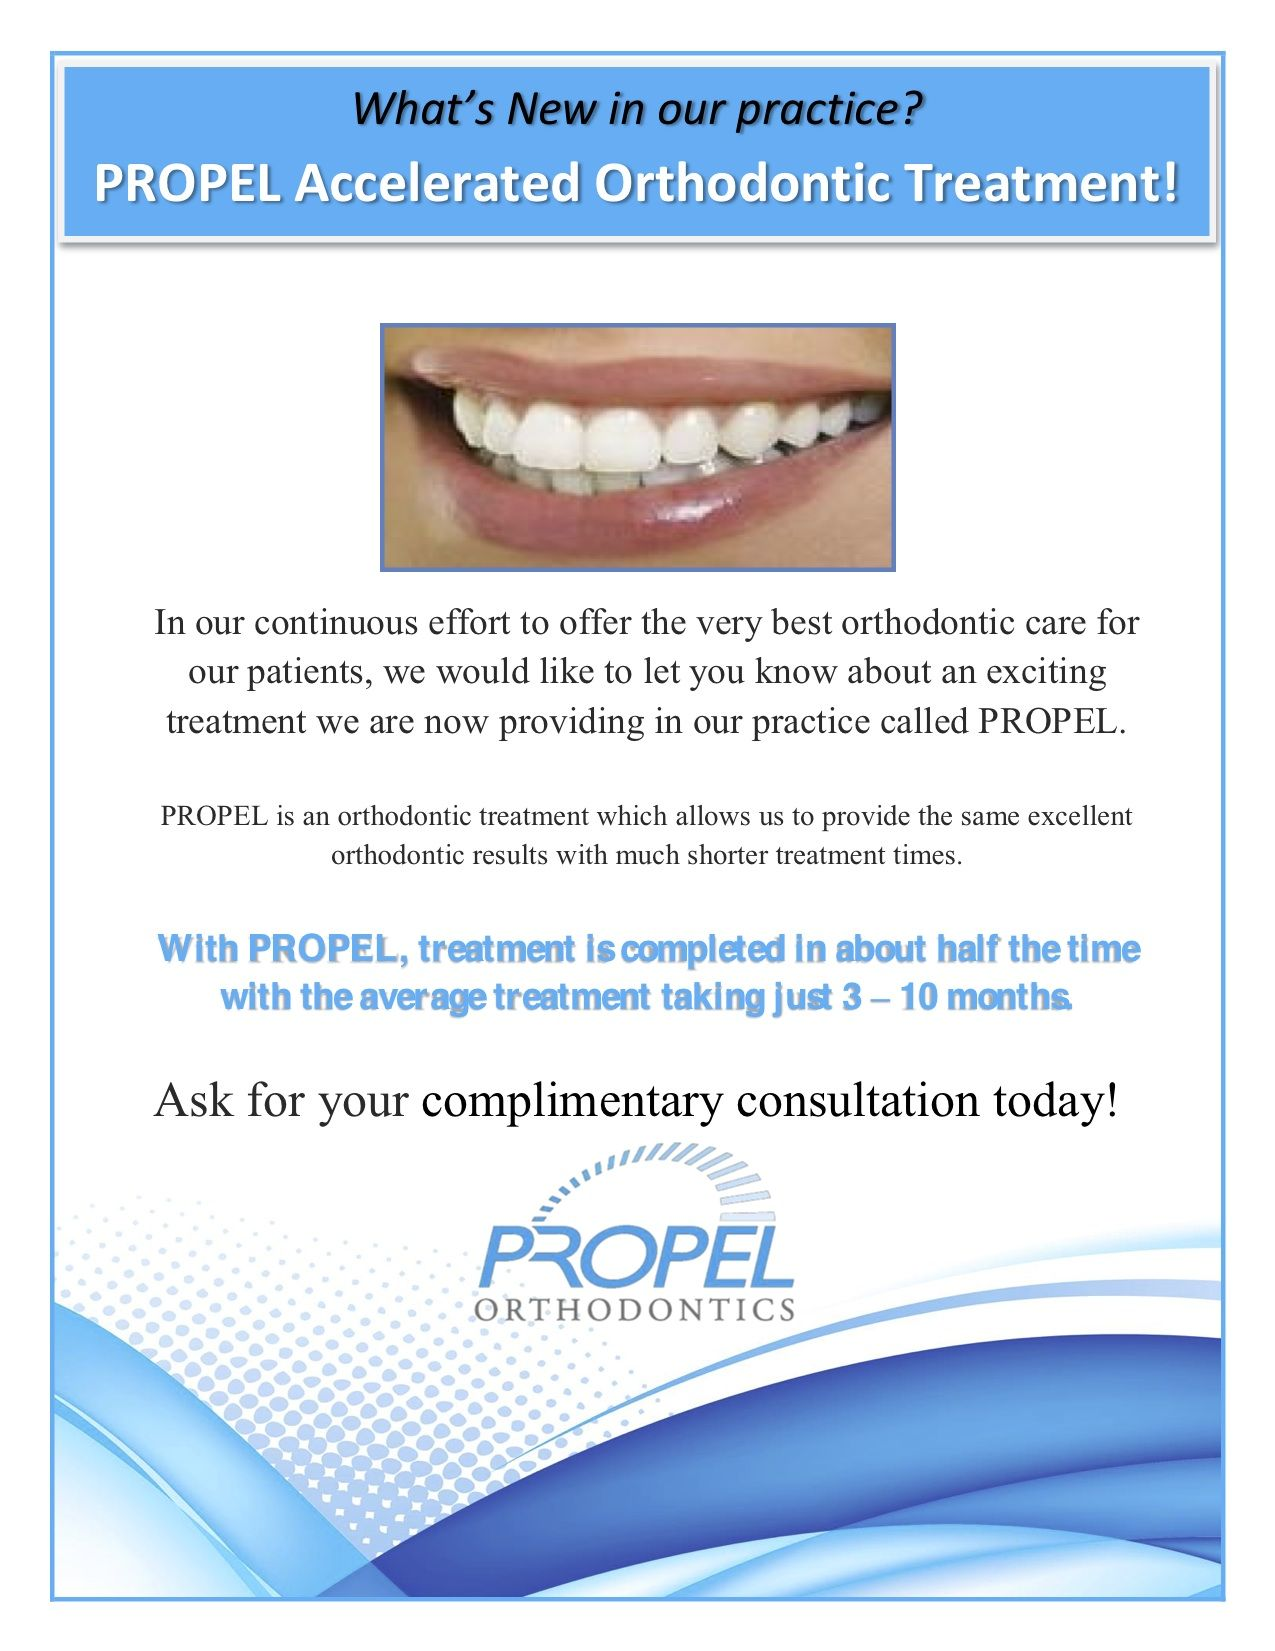 Pin by Bankokbeauty8 on Accelerated Ortho Orthodontics